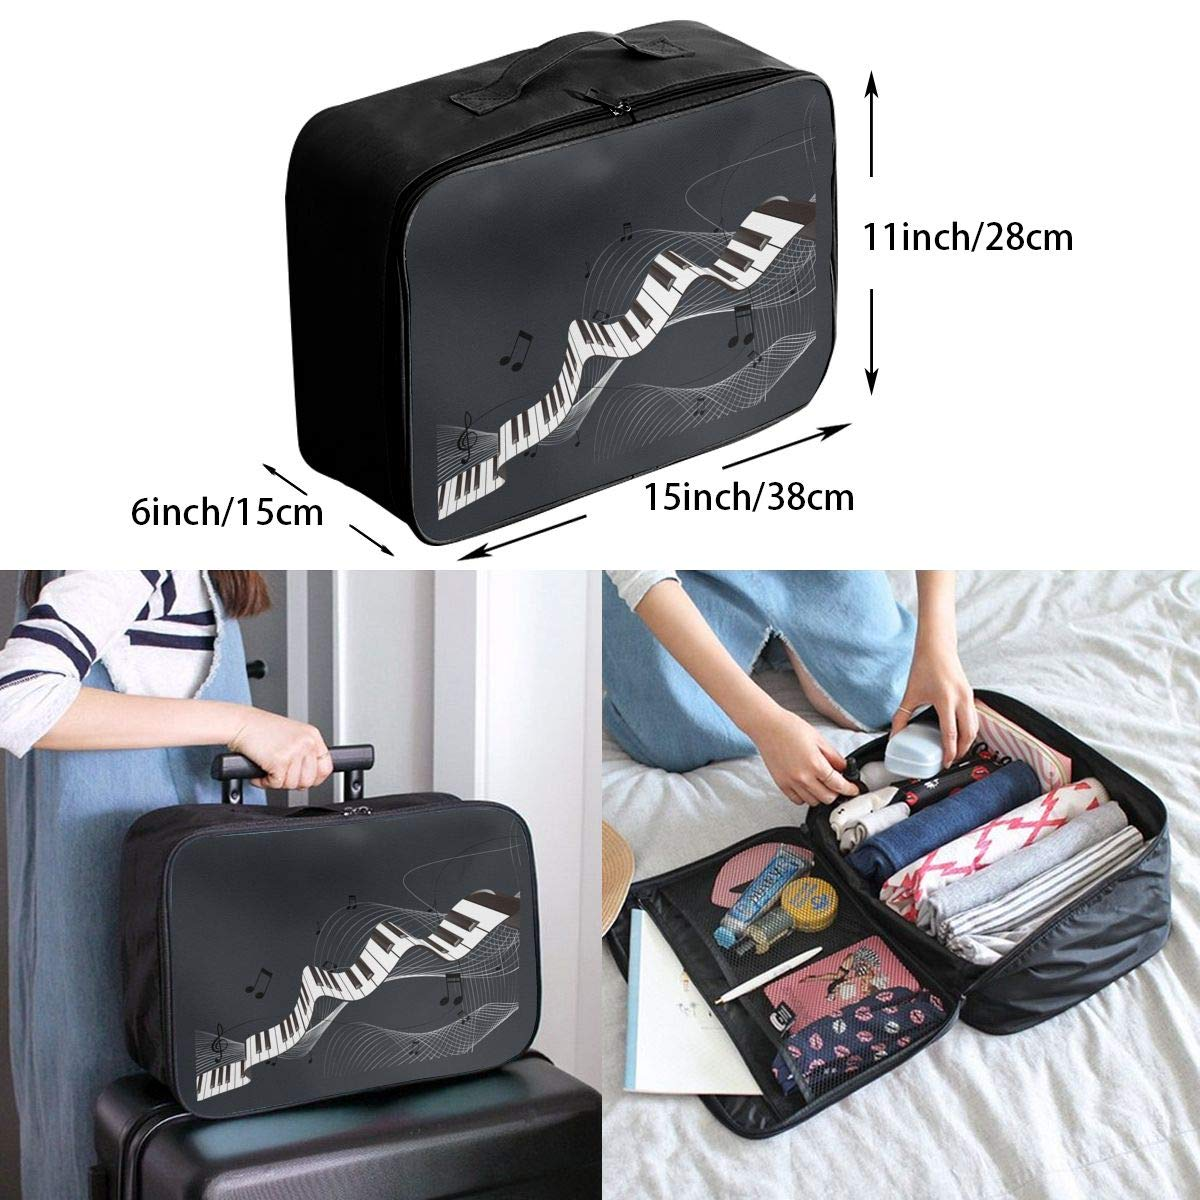 Travel Luggage Duffle Bag Lightweight Portable Handbag Saxophone Large Capacity Waterproof Foldable Storage Tote